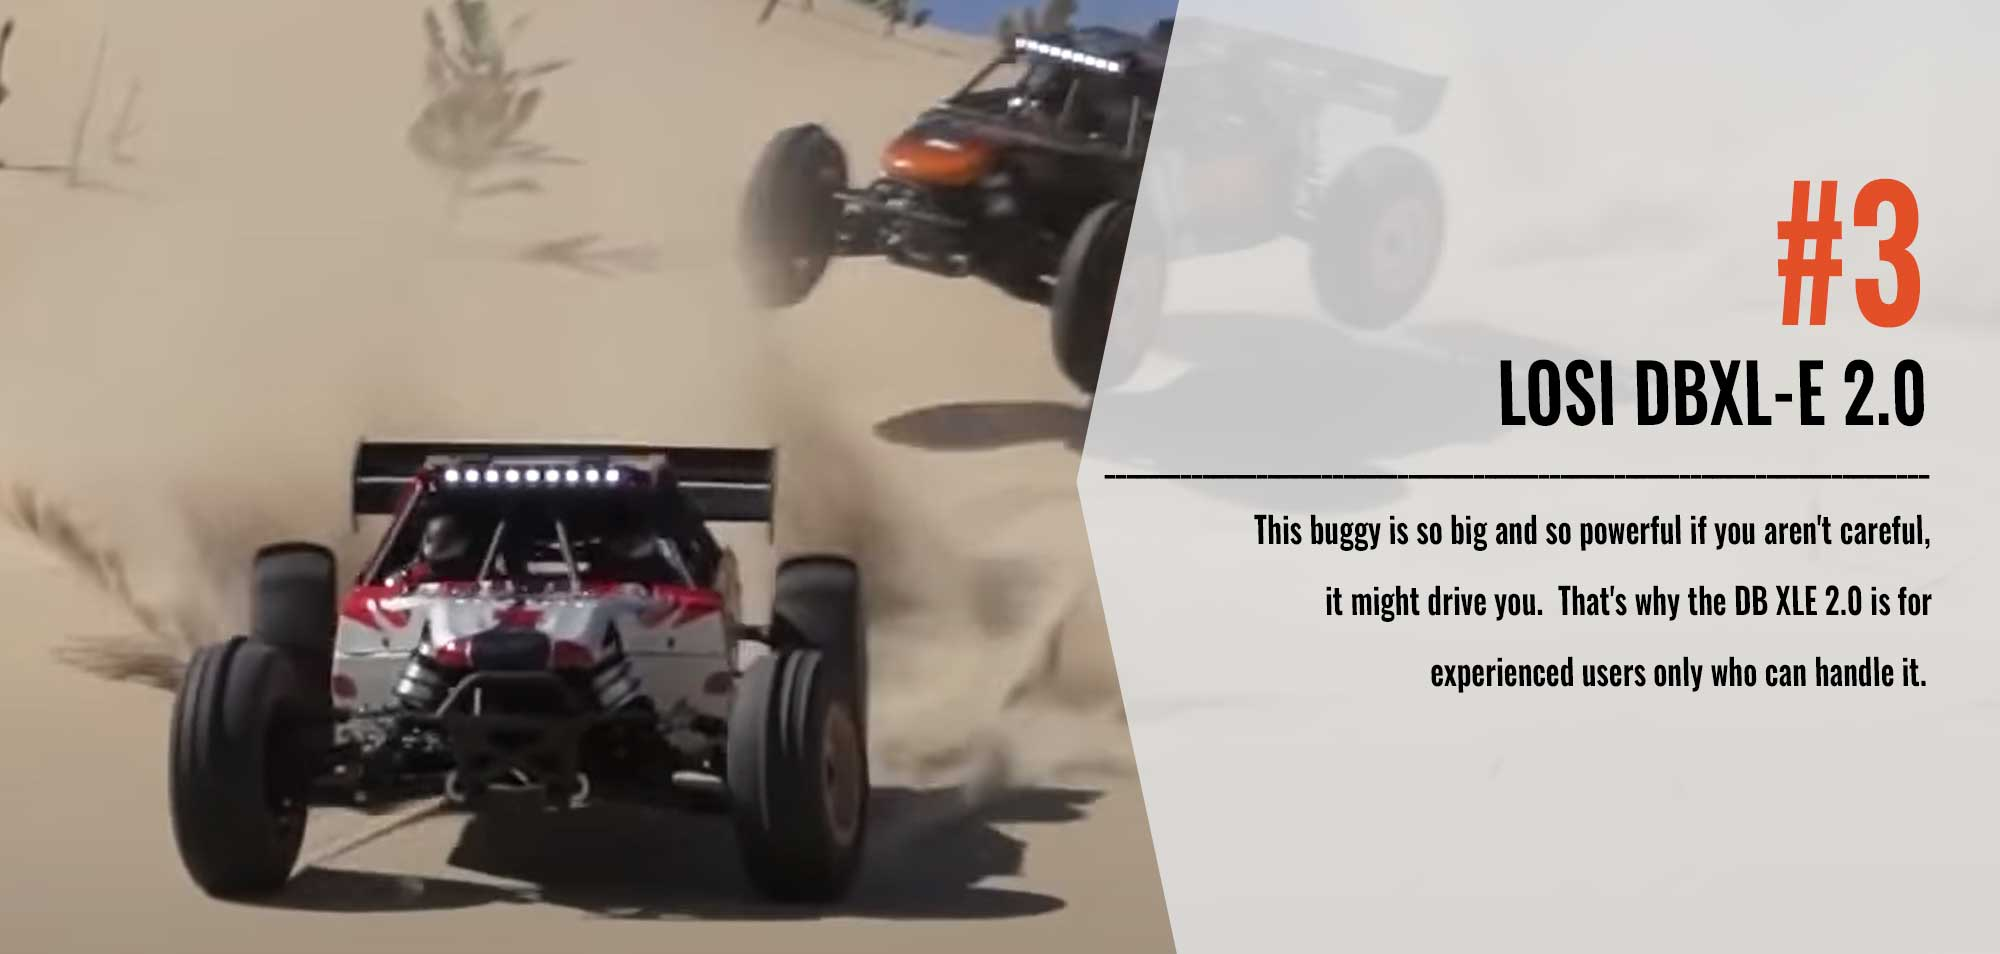 Number Three in our Top 10 List - Losi DBXL-E 2.0